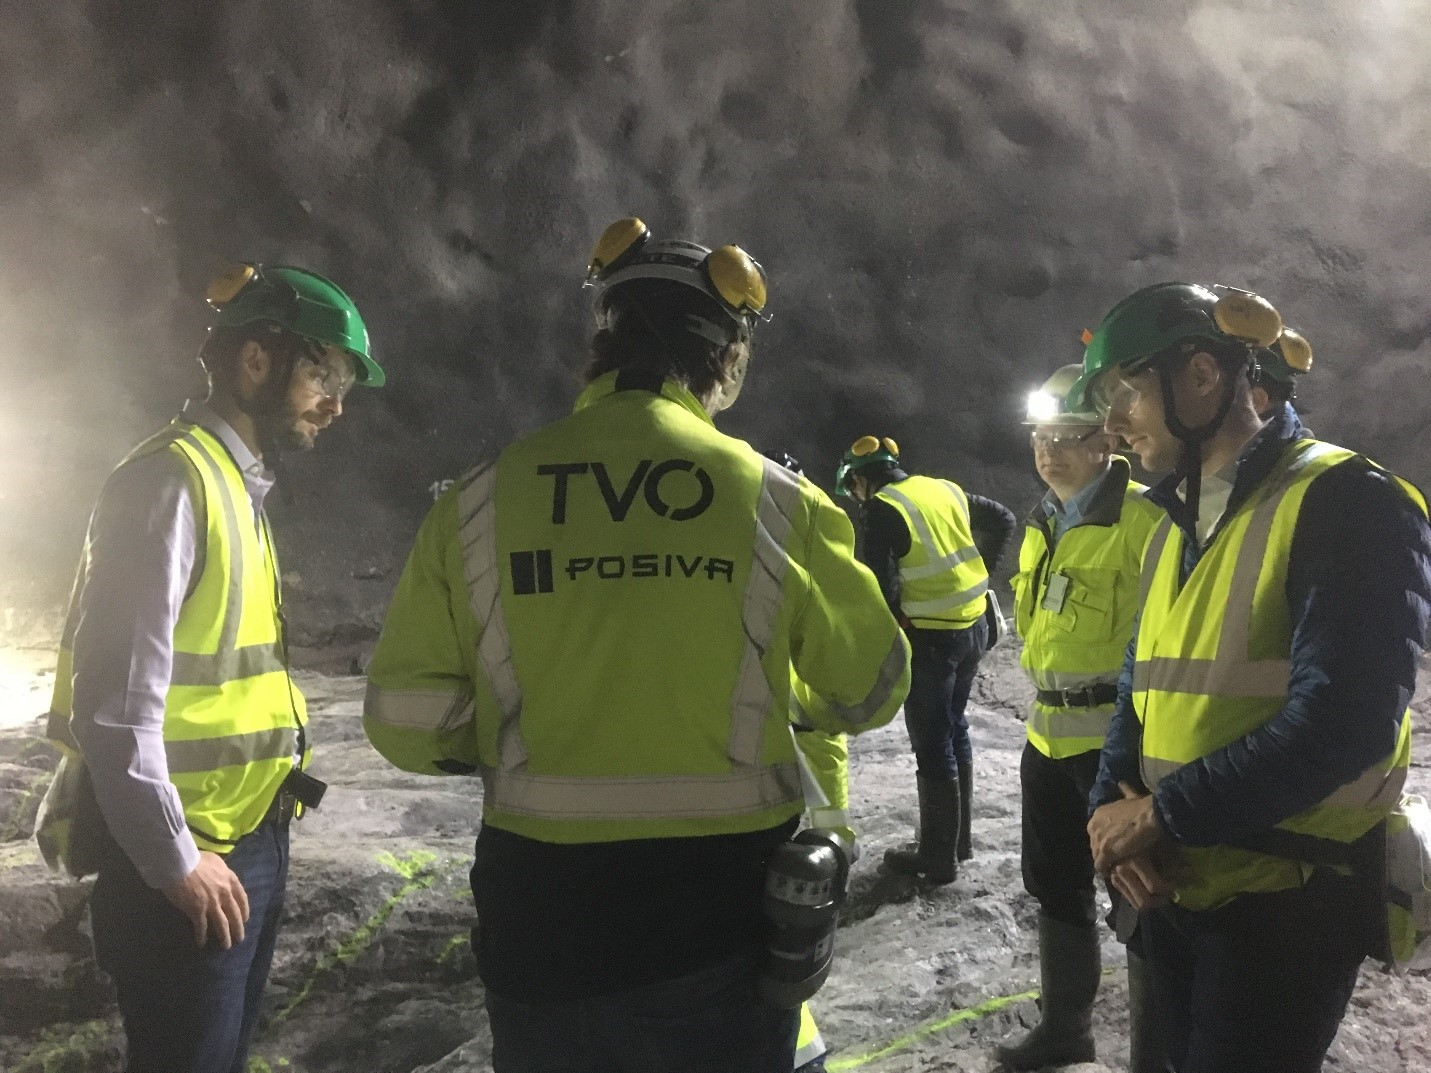 Chris Boyle (left), NWMO Director of Engineering, and Mark Gobien (right), Safety Assessment Models Section Manager, tour the Posiva project in Finland, along with Arto Laikari, a senior scientist involved with the project.